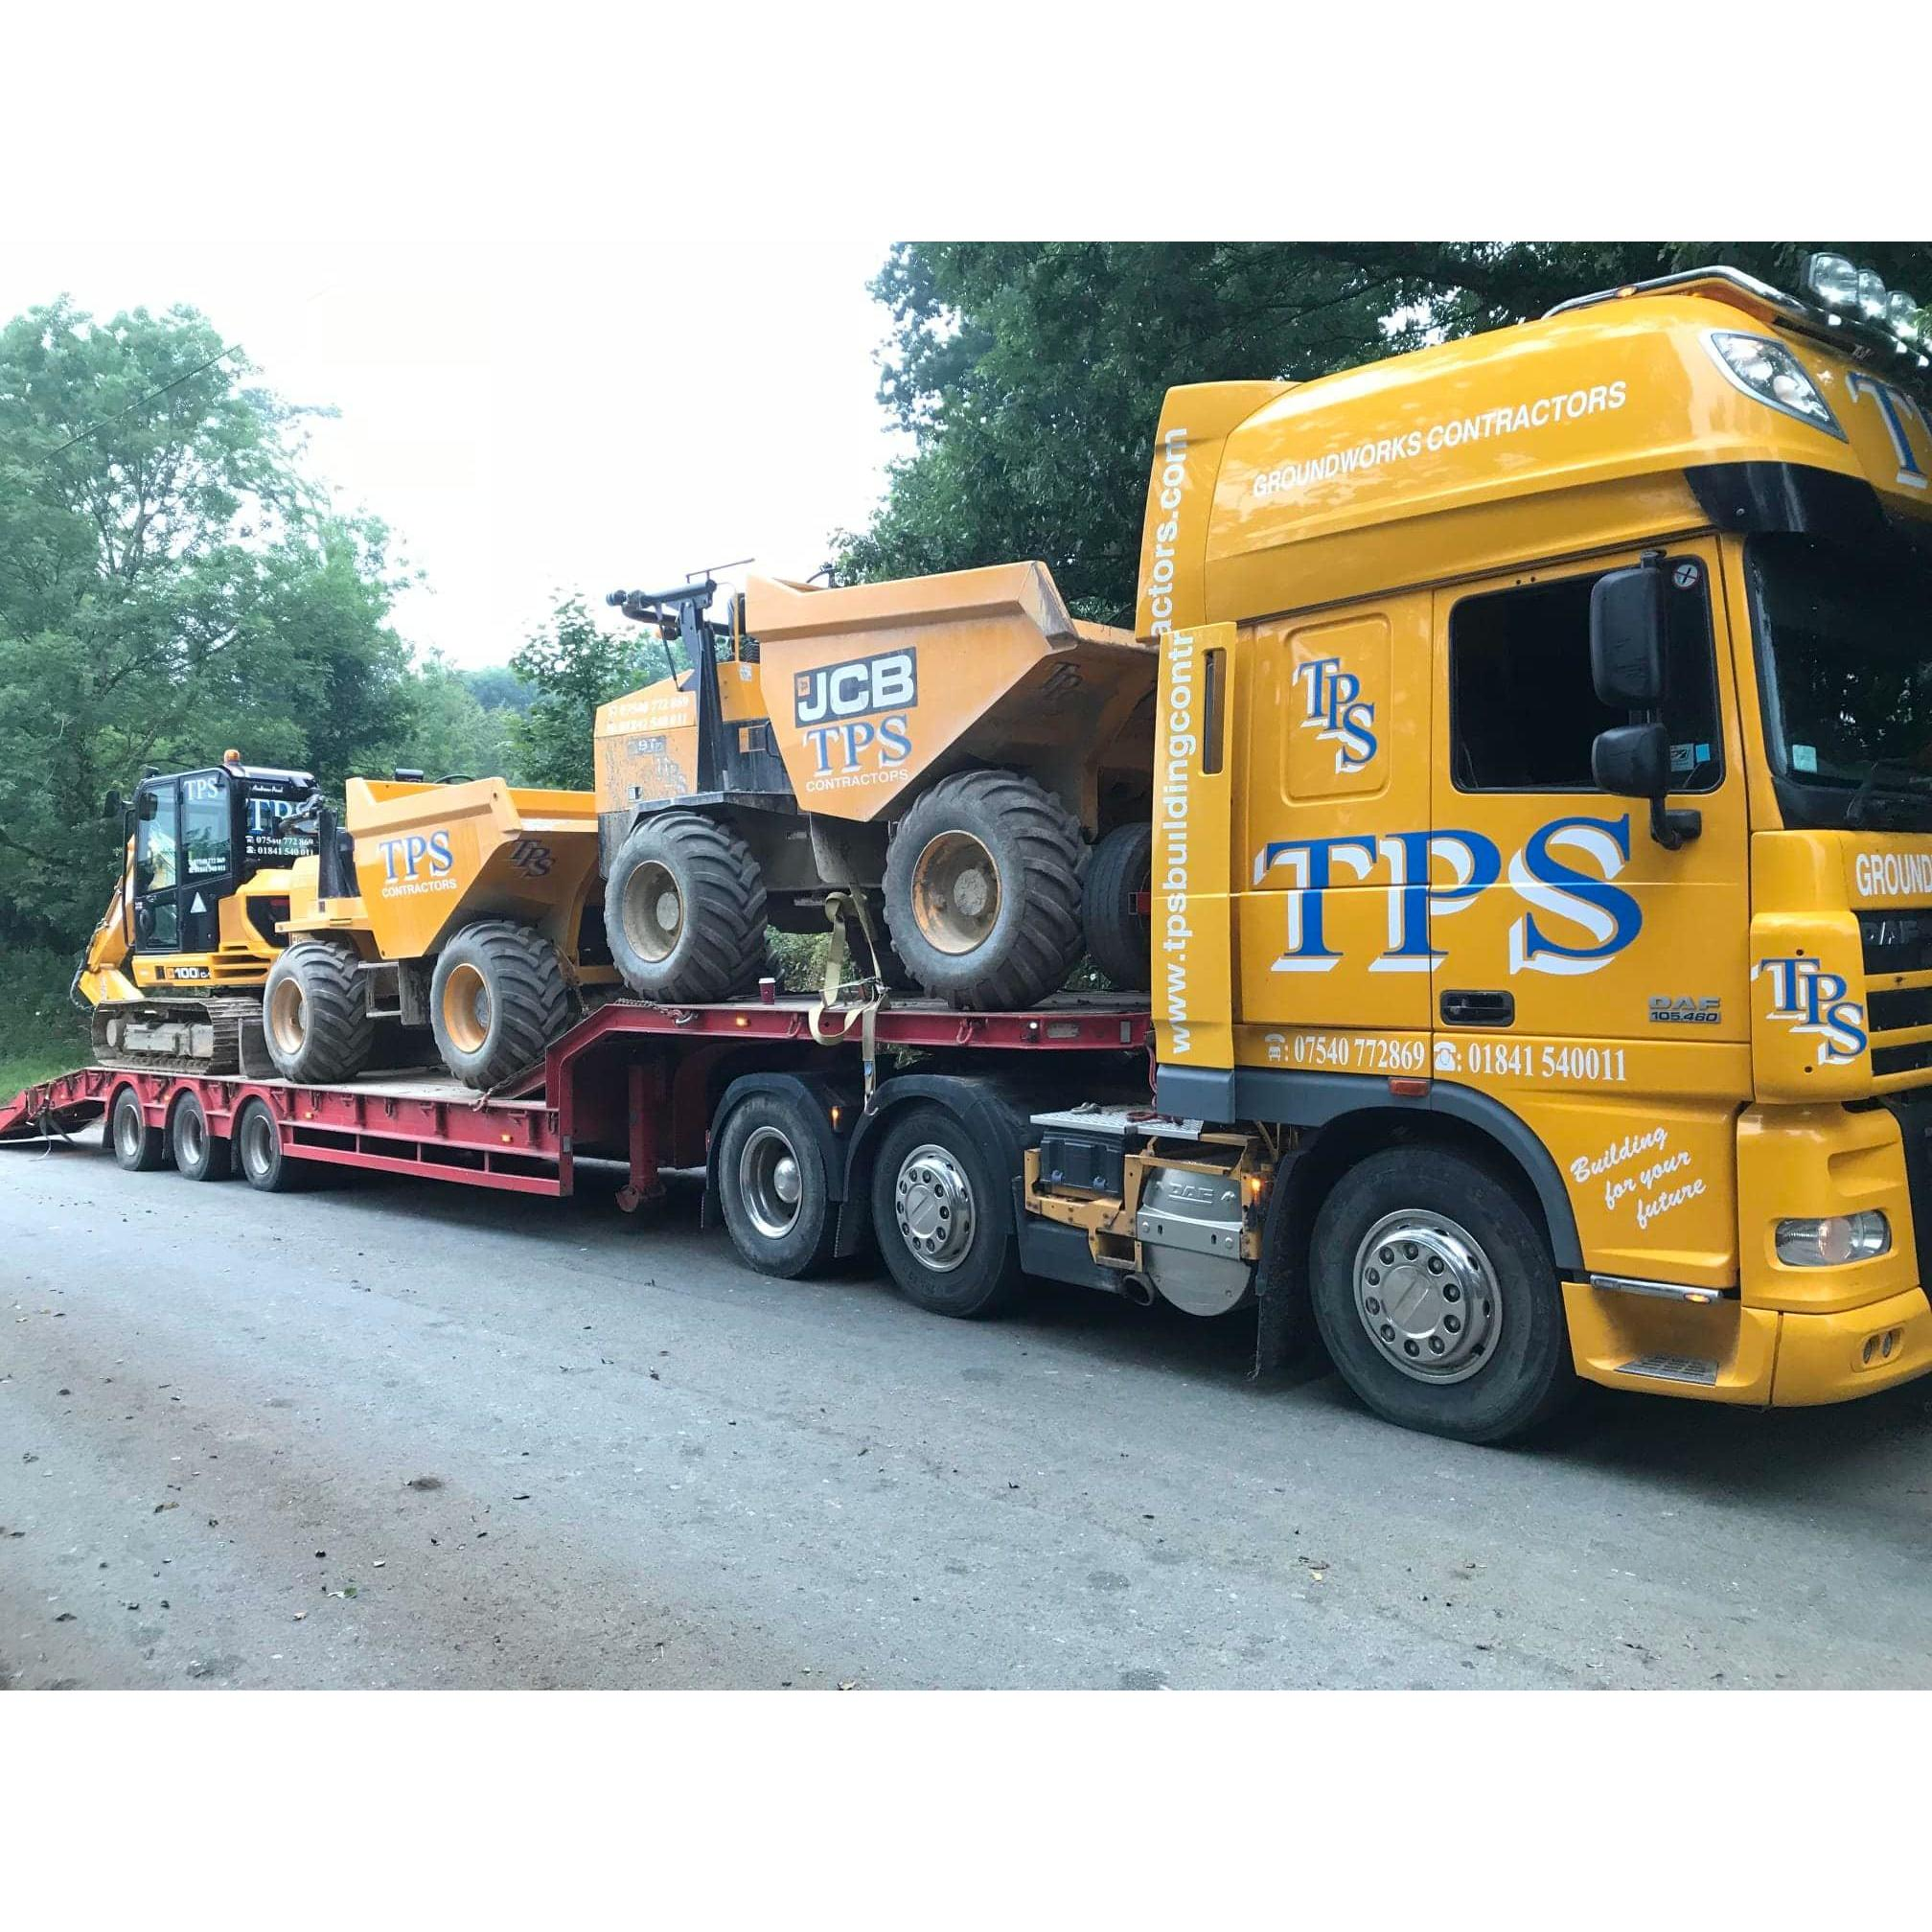 TPS Building Plastering & Groundworks Contractors - Wadebridge, Cornwall PL27 7RN - 01841 540011 | ShowMeLocal.com